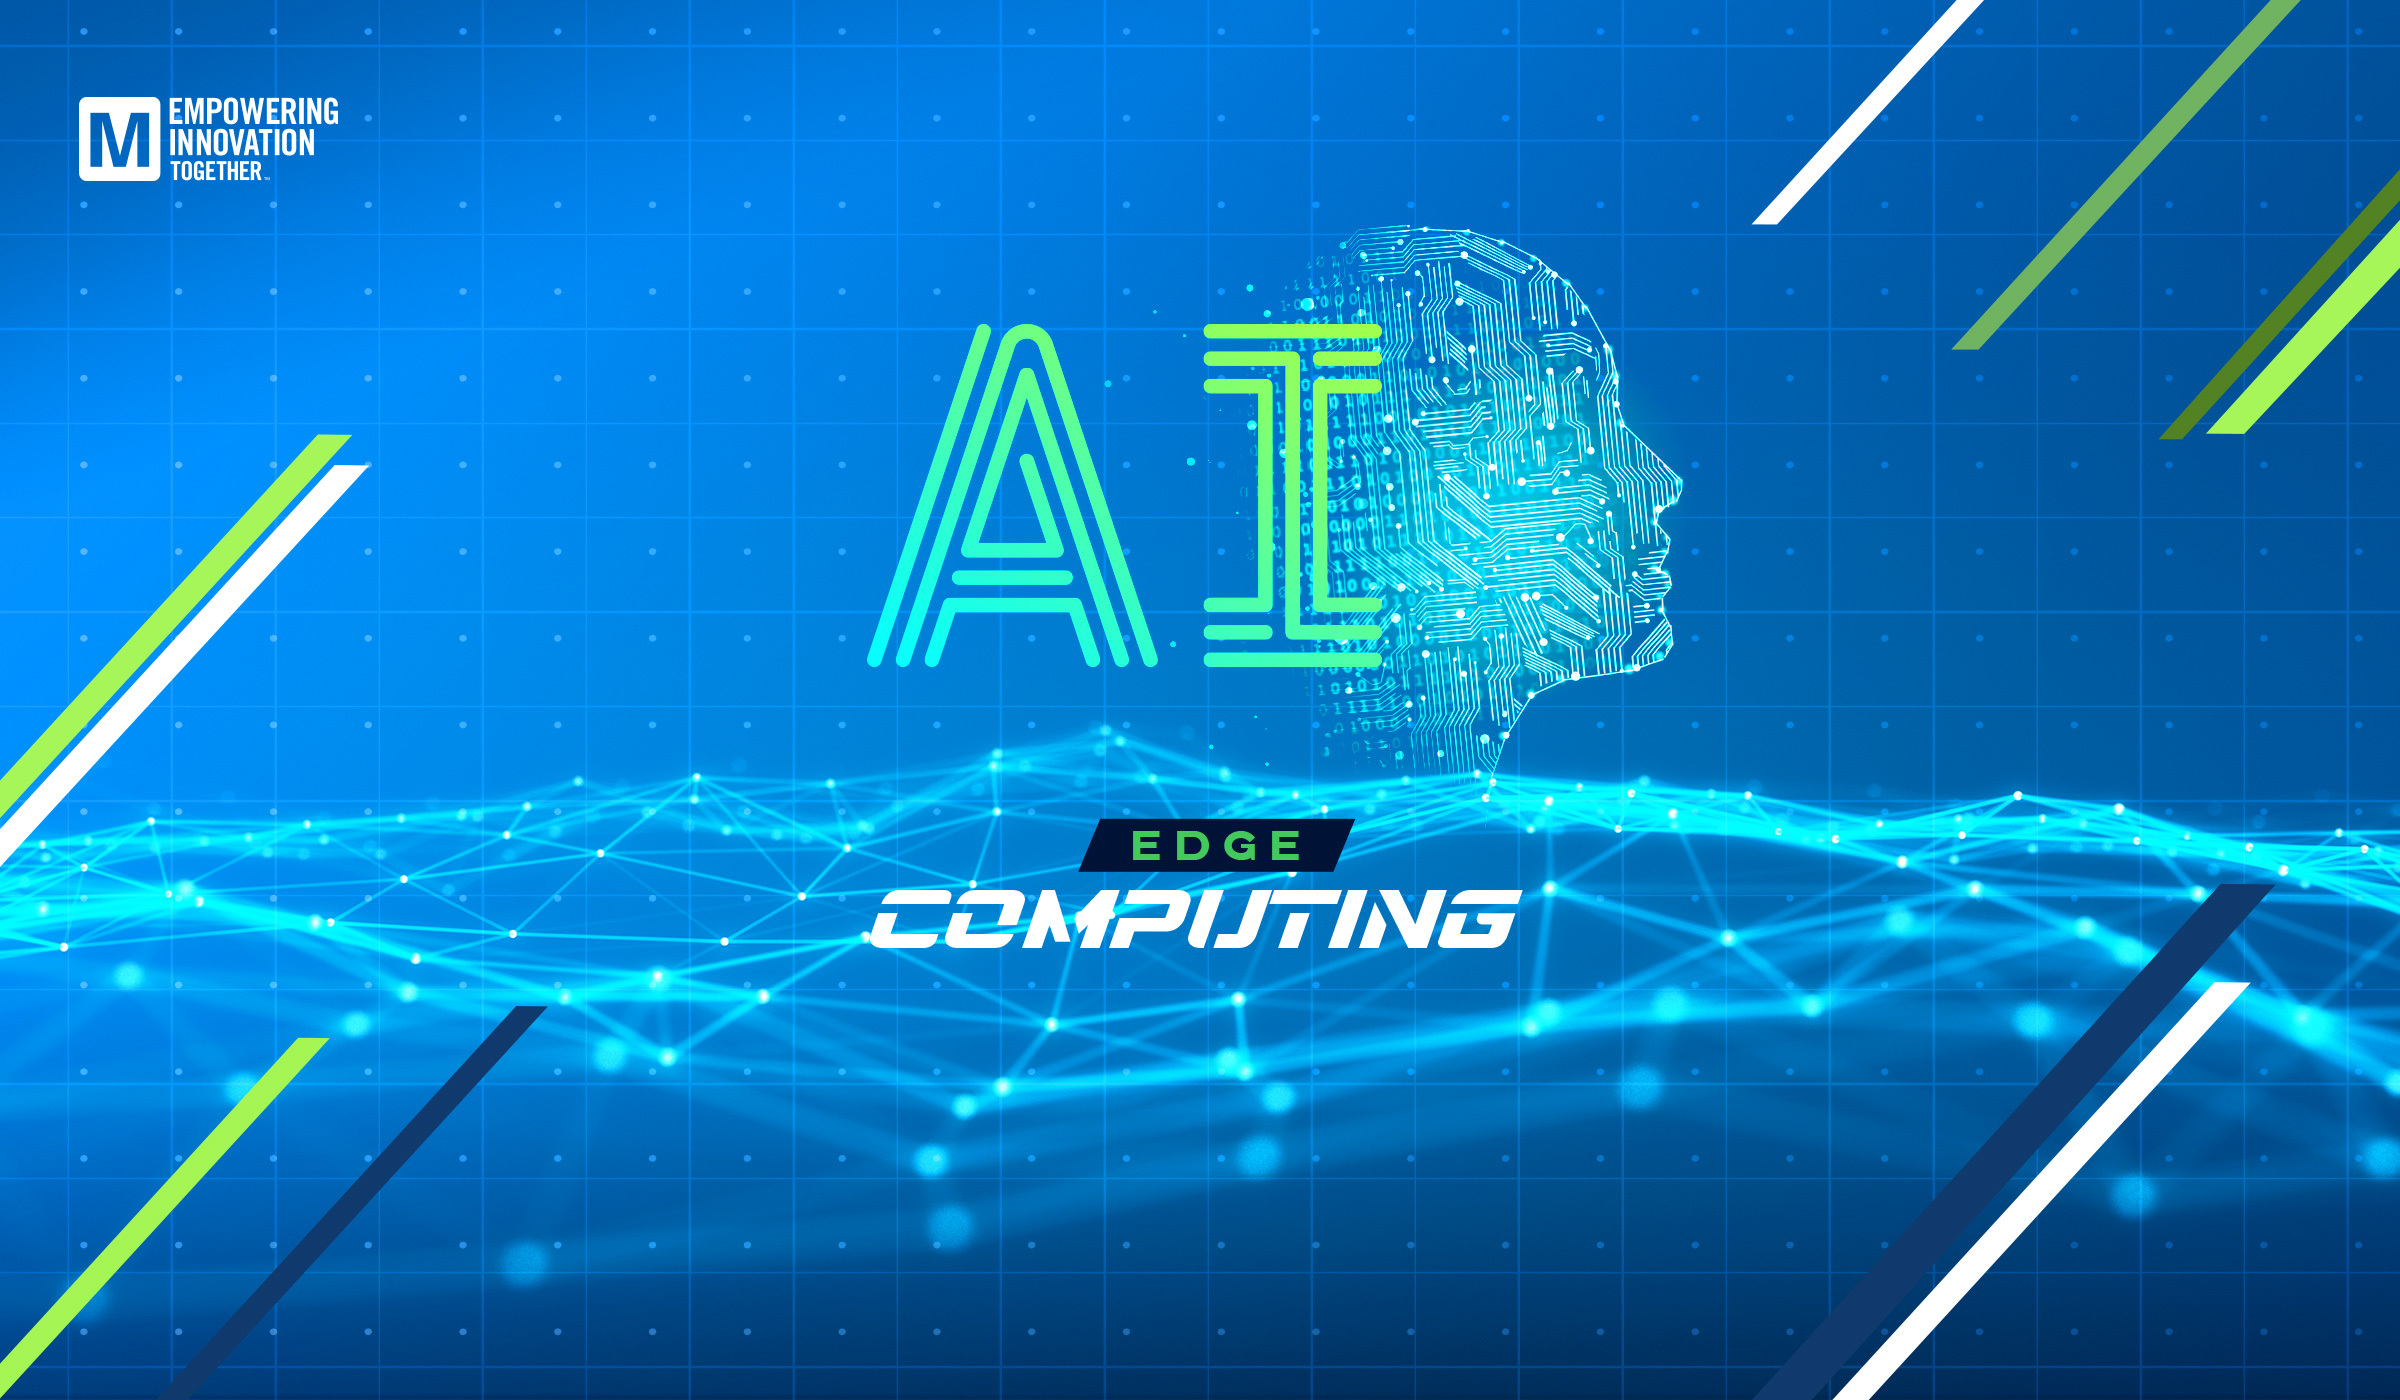 How Can We Ensure That A.I. Is Responsible?